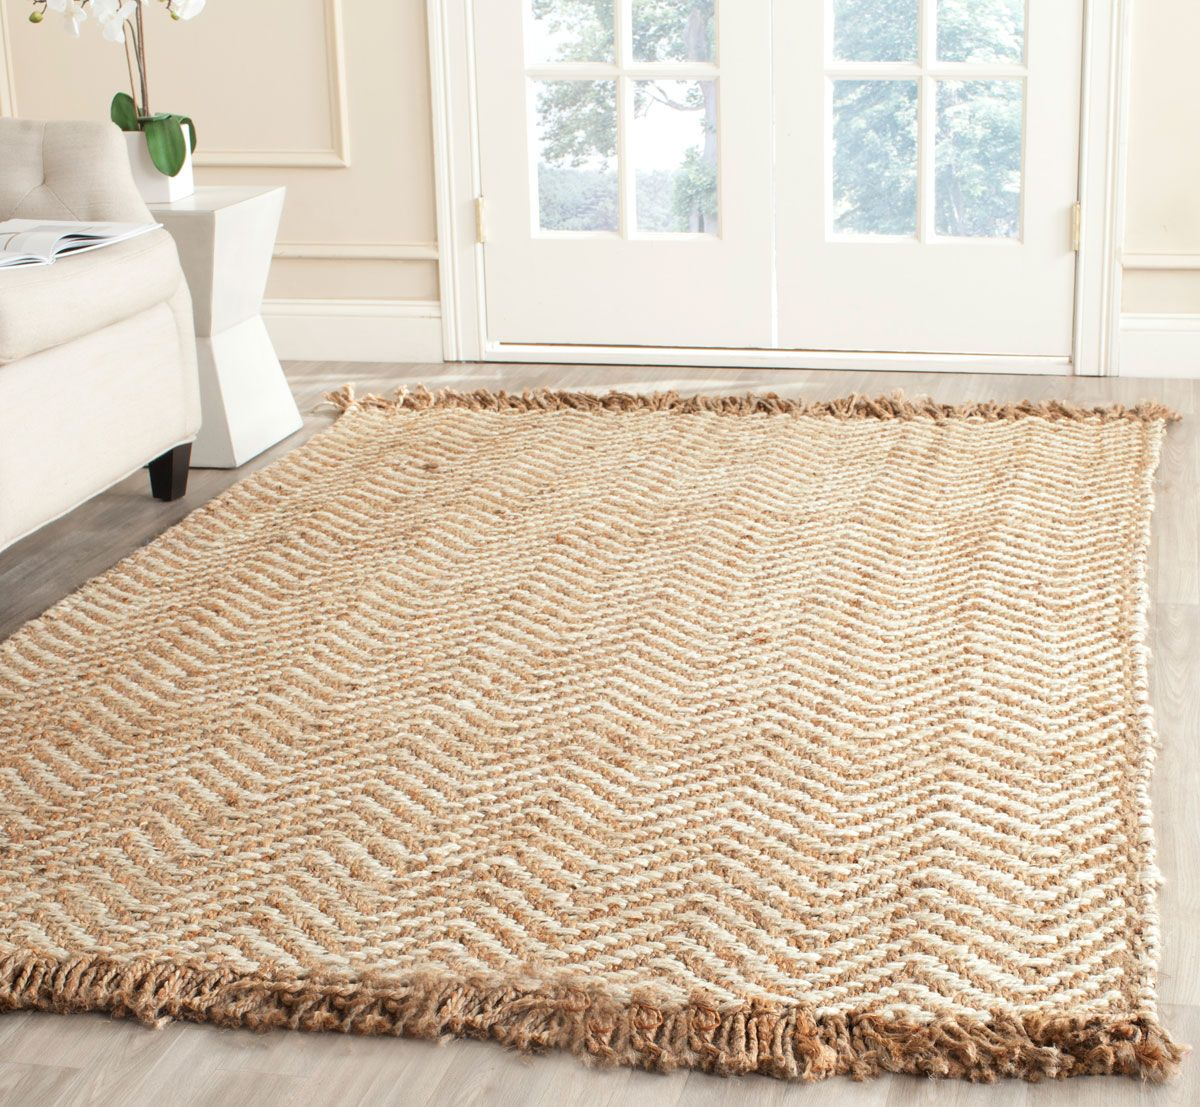 Rug Nf458a Natural Fiber Area Rugs By Latex Flooring Alfombras